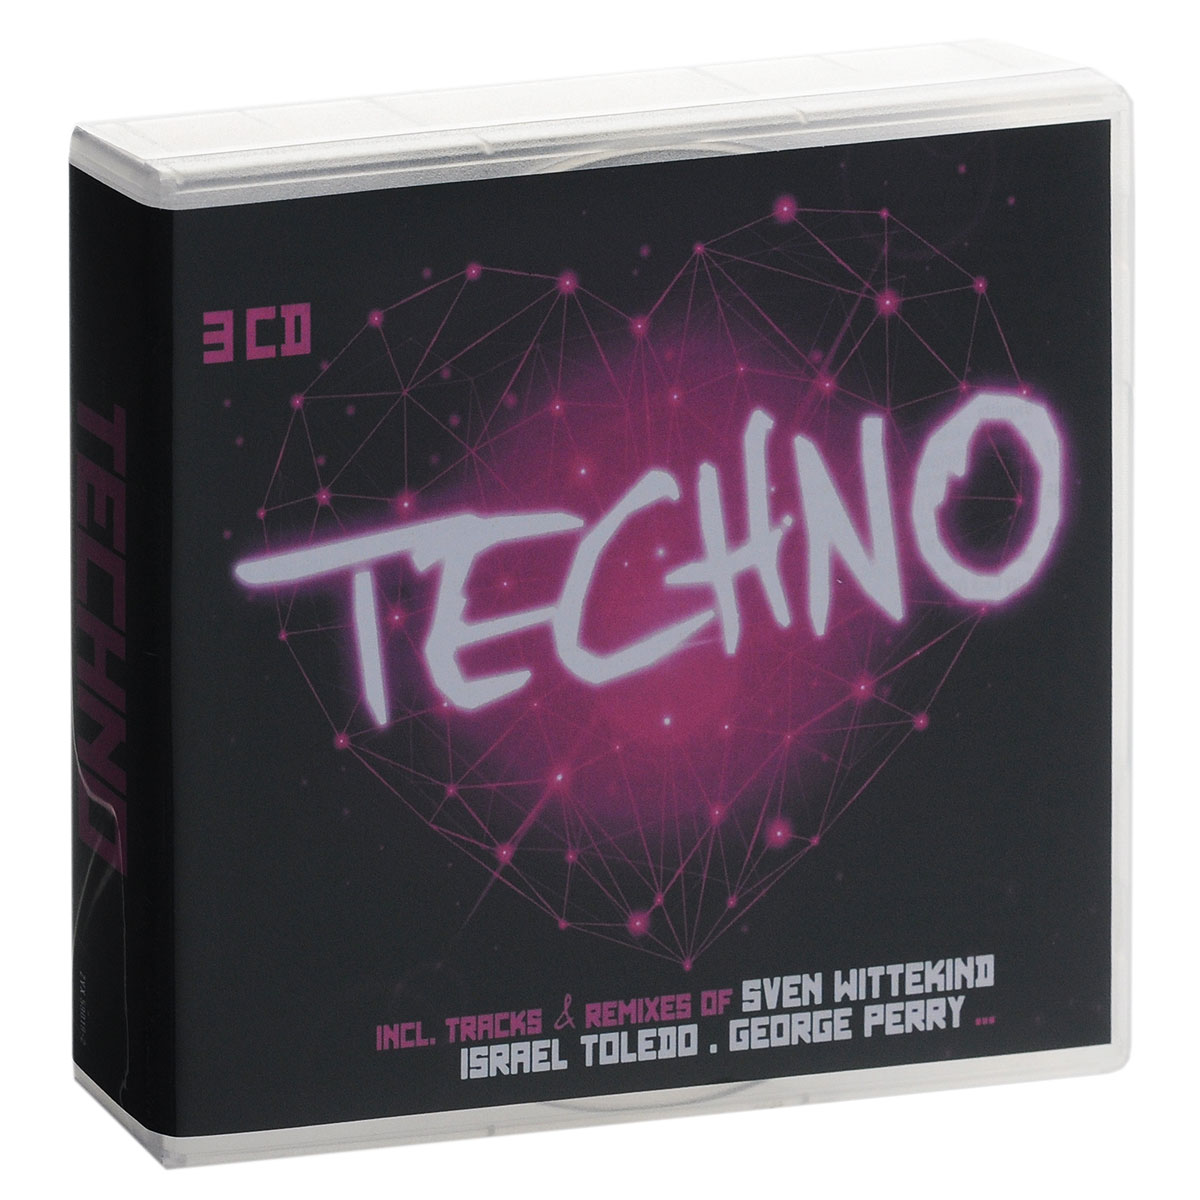 Techno (3 CD)